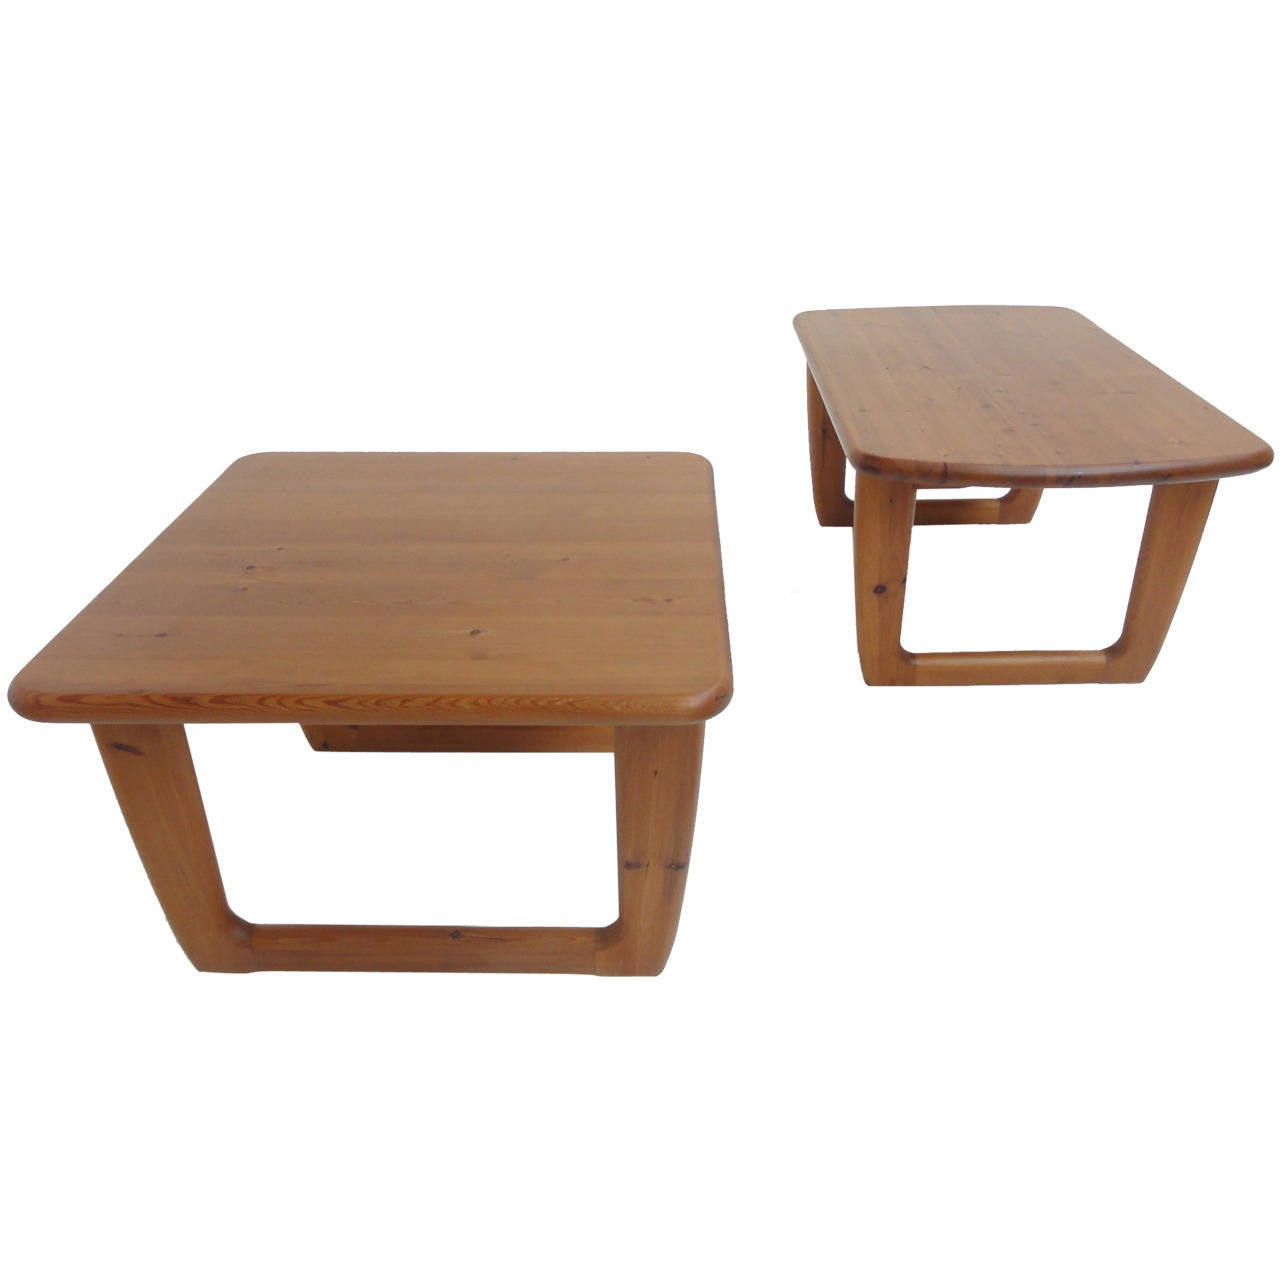 Solid Pinewood Coffee Tables By Korup Stolefabrik Denmark 1970 S 1